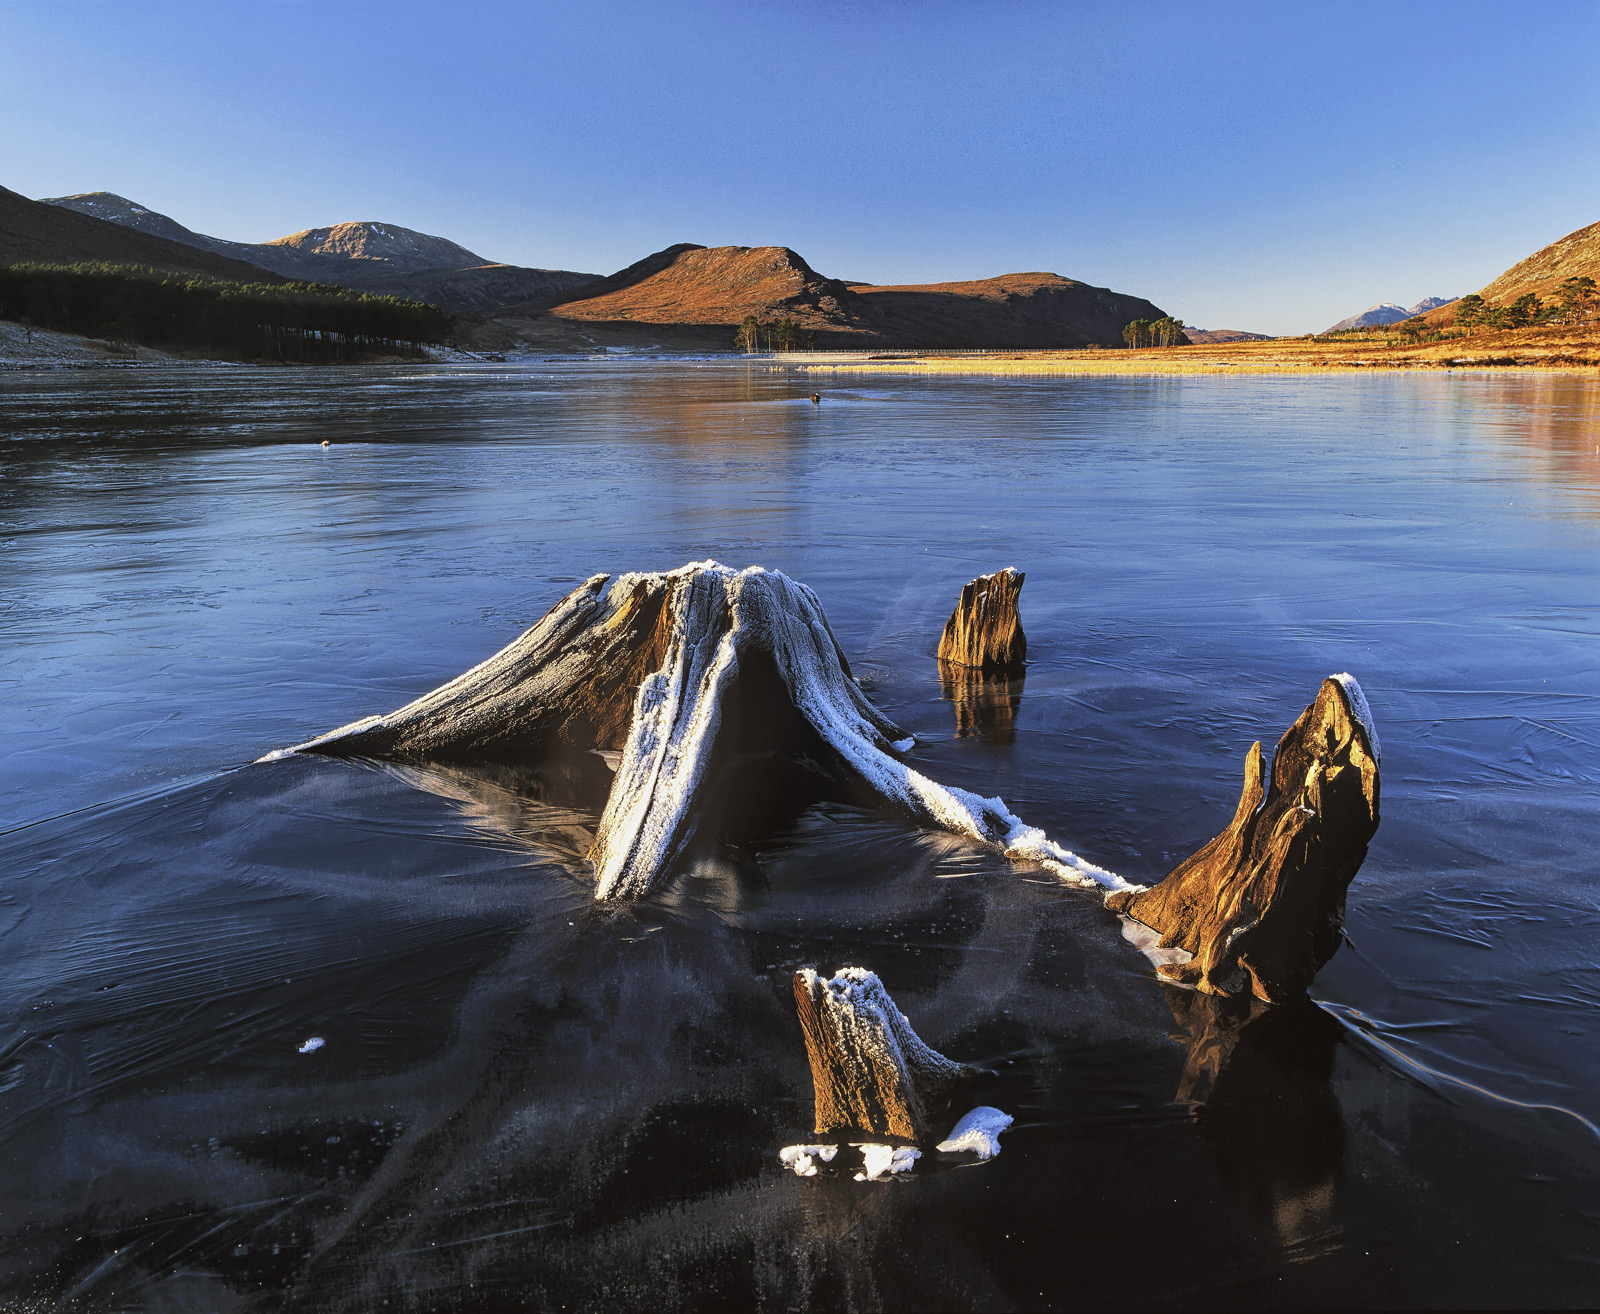 Loch Droma has a number of partially submerged tree roots located around its edges. When the water is low they become visible...